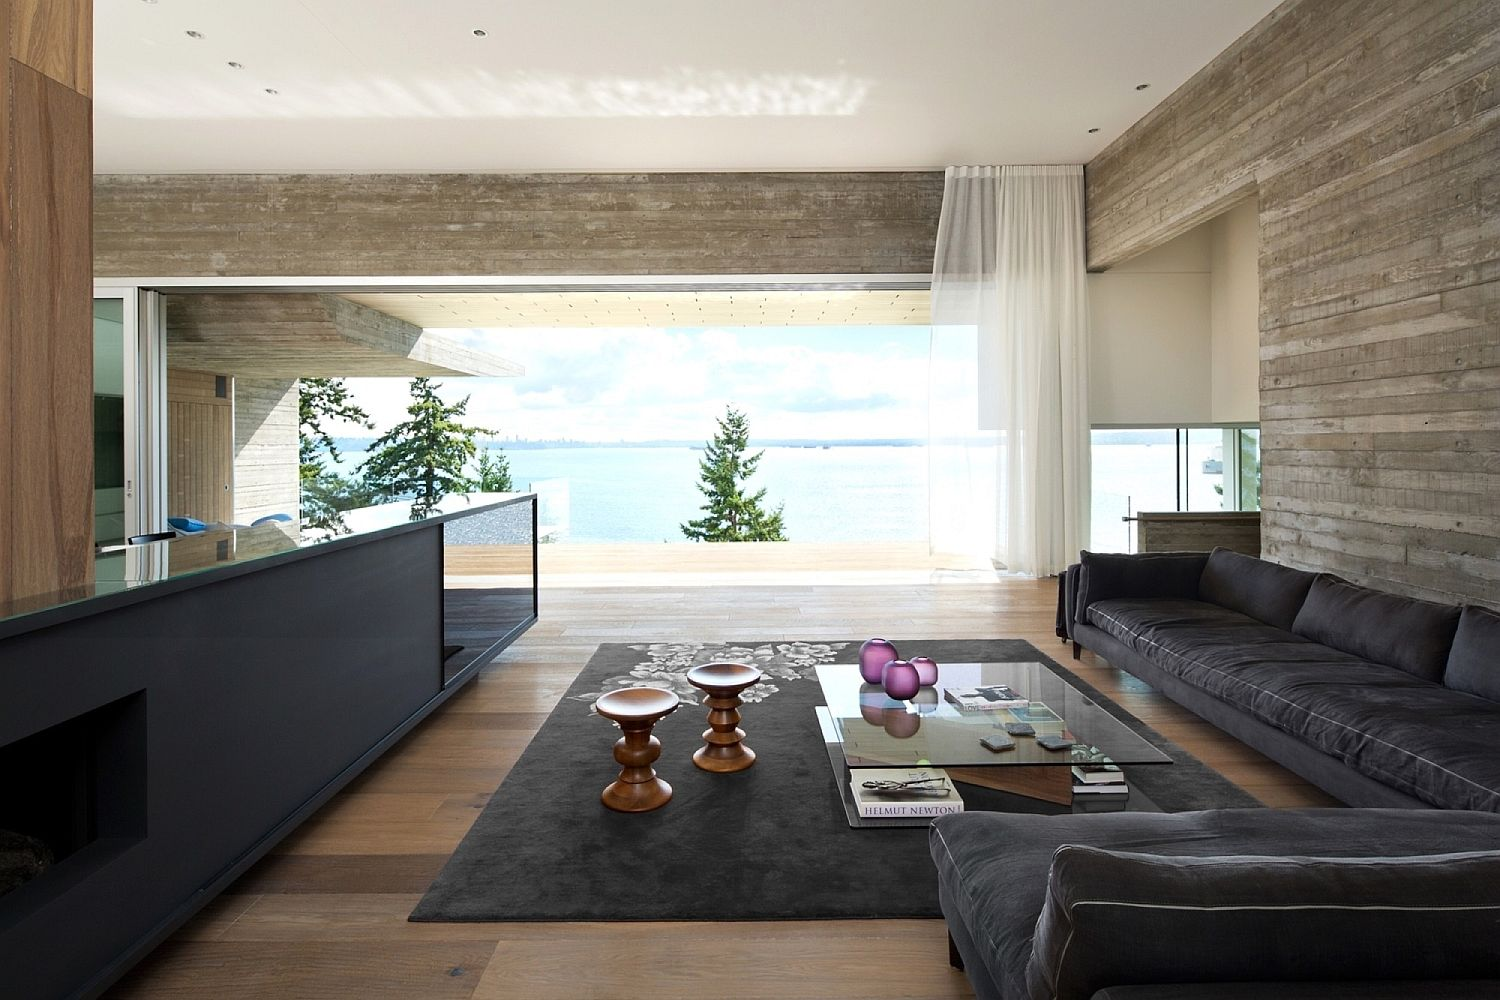 Living area clad in concrete, wood and leather with modern minimalism